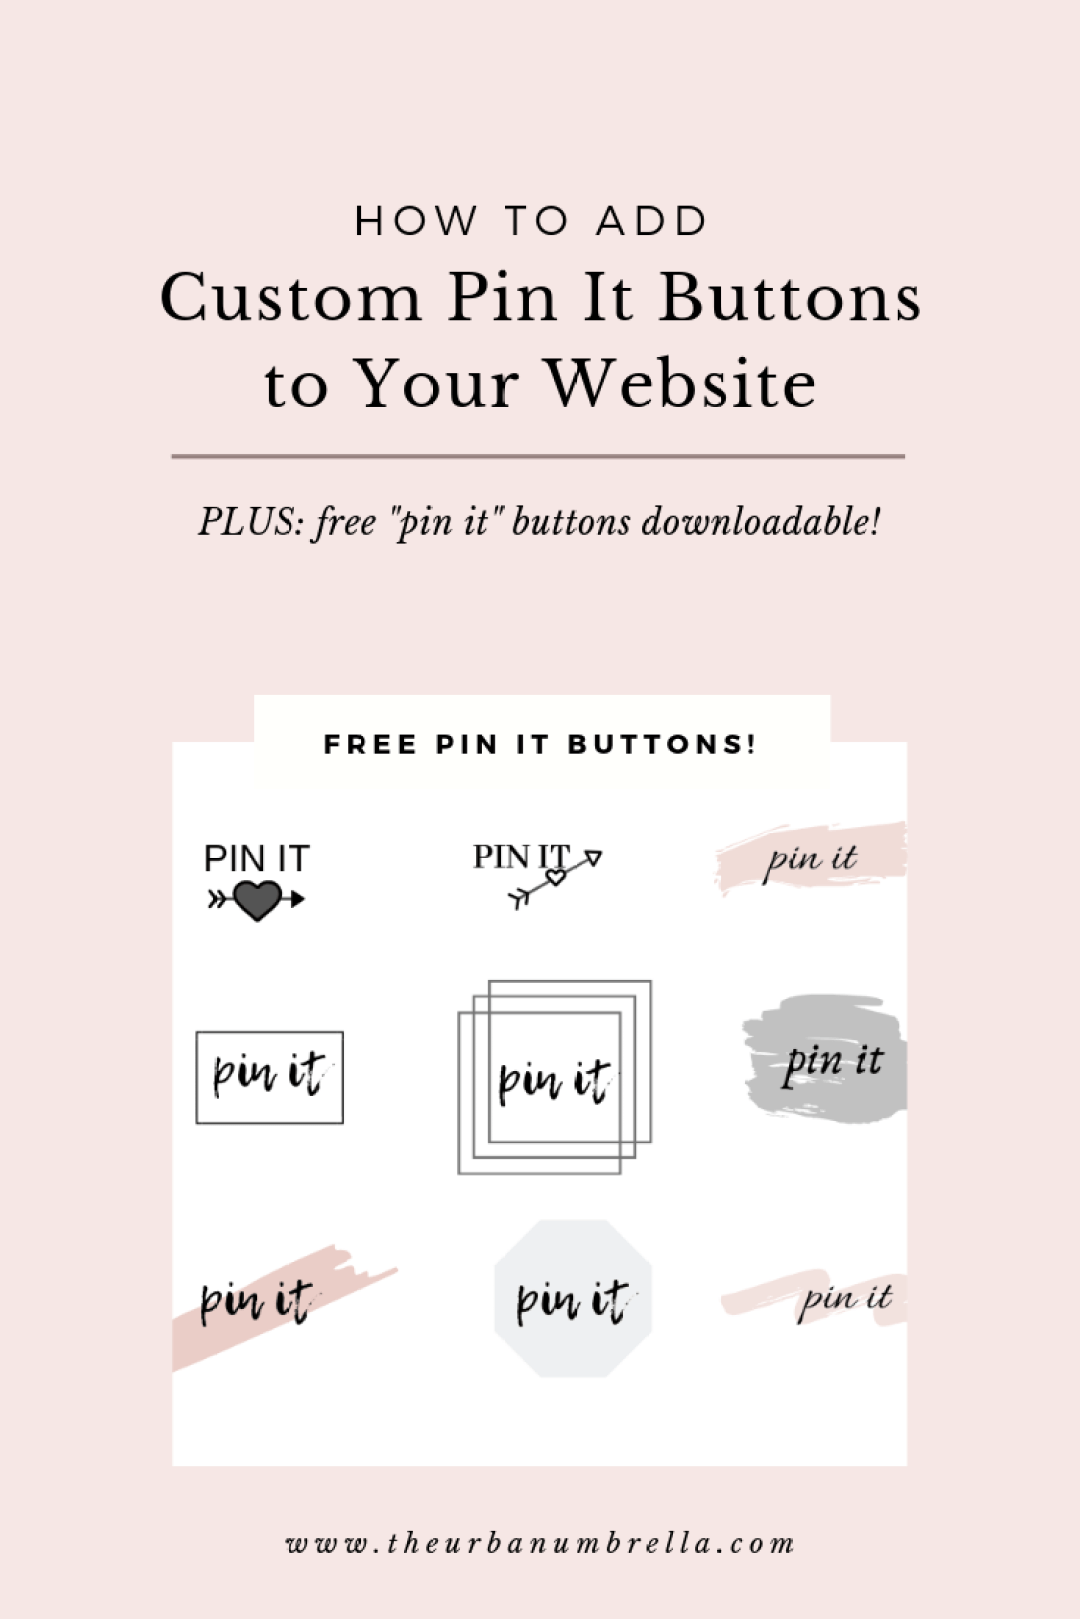 How to Add Custom Pin It Buttons to Your Blog | Plus Free Downloadable Pin It Buttons